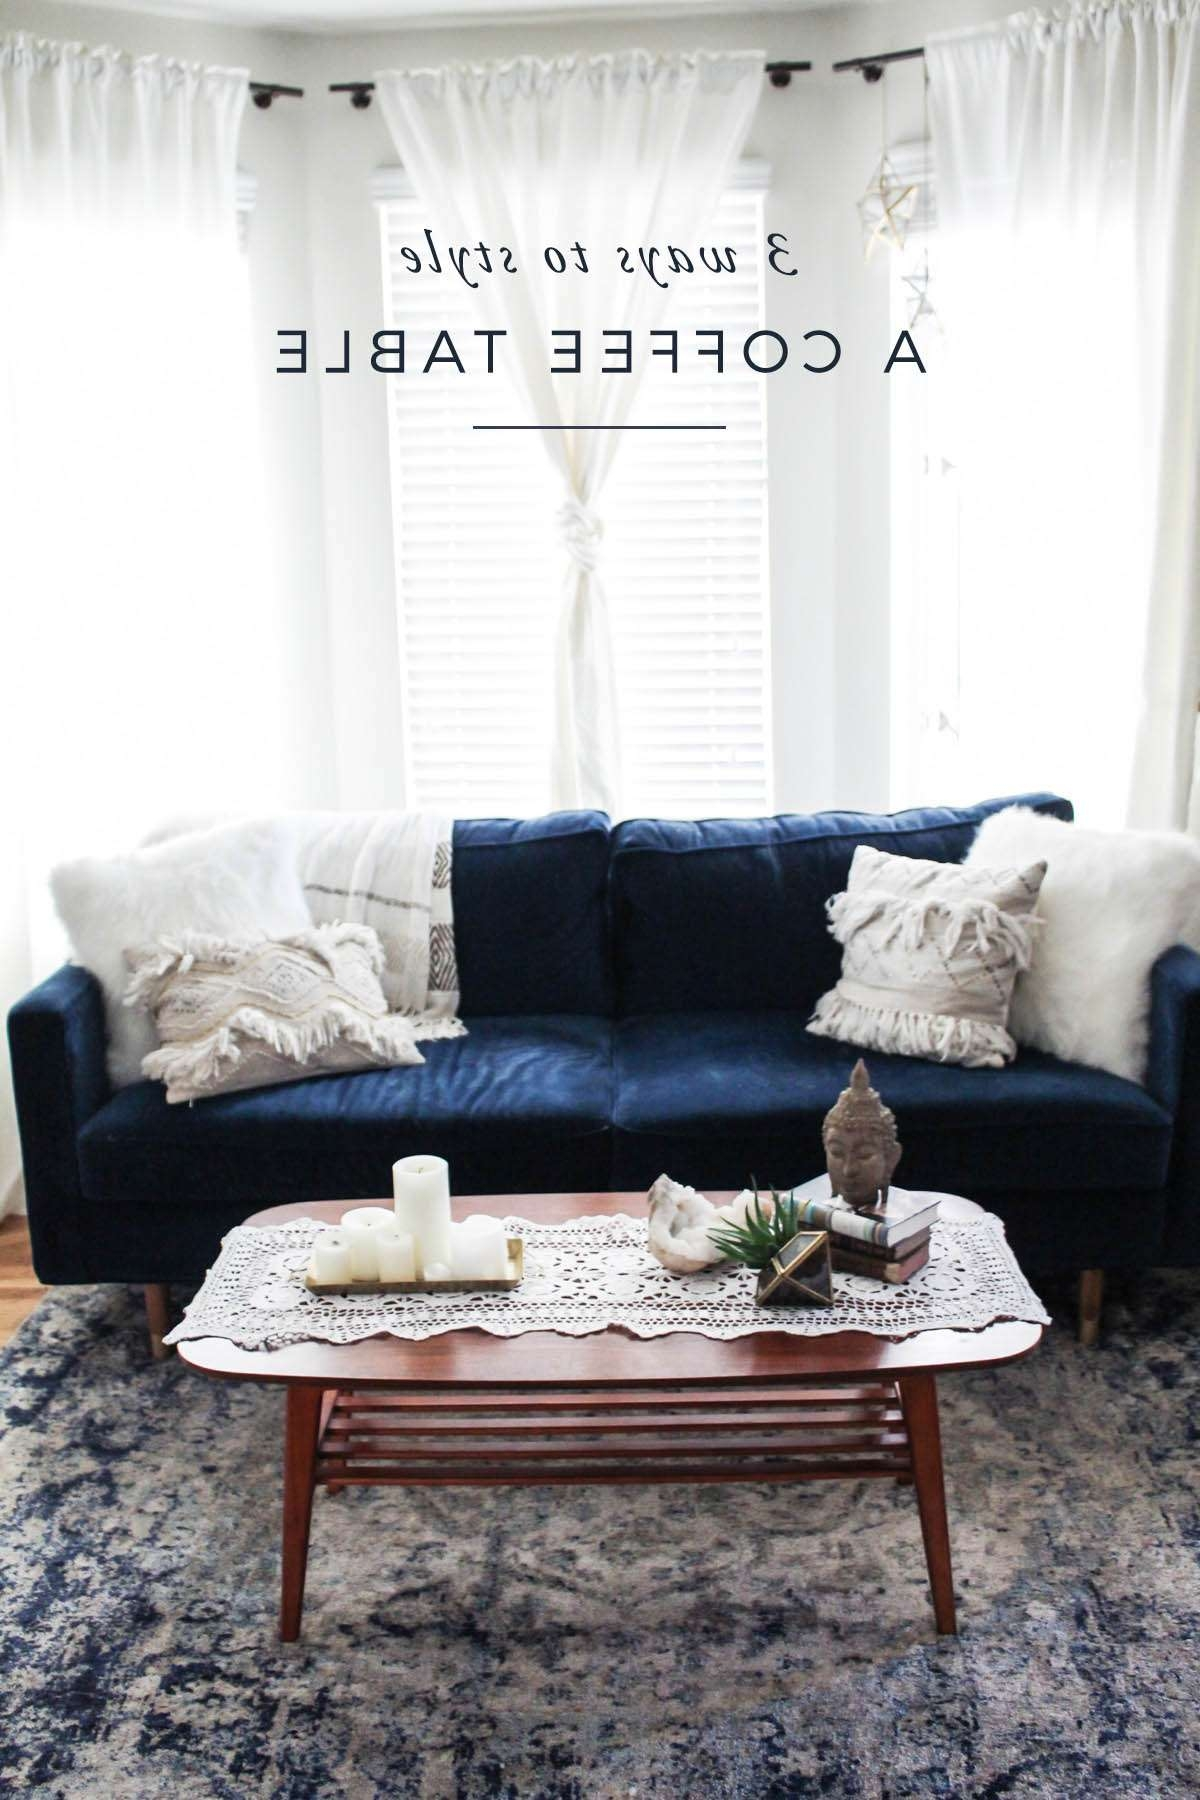 3 Ways To Style A Coffee Table – Aol Lifestyle Throughout Widely Used Boho Coffee Tables (View 2 of 20)